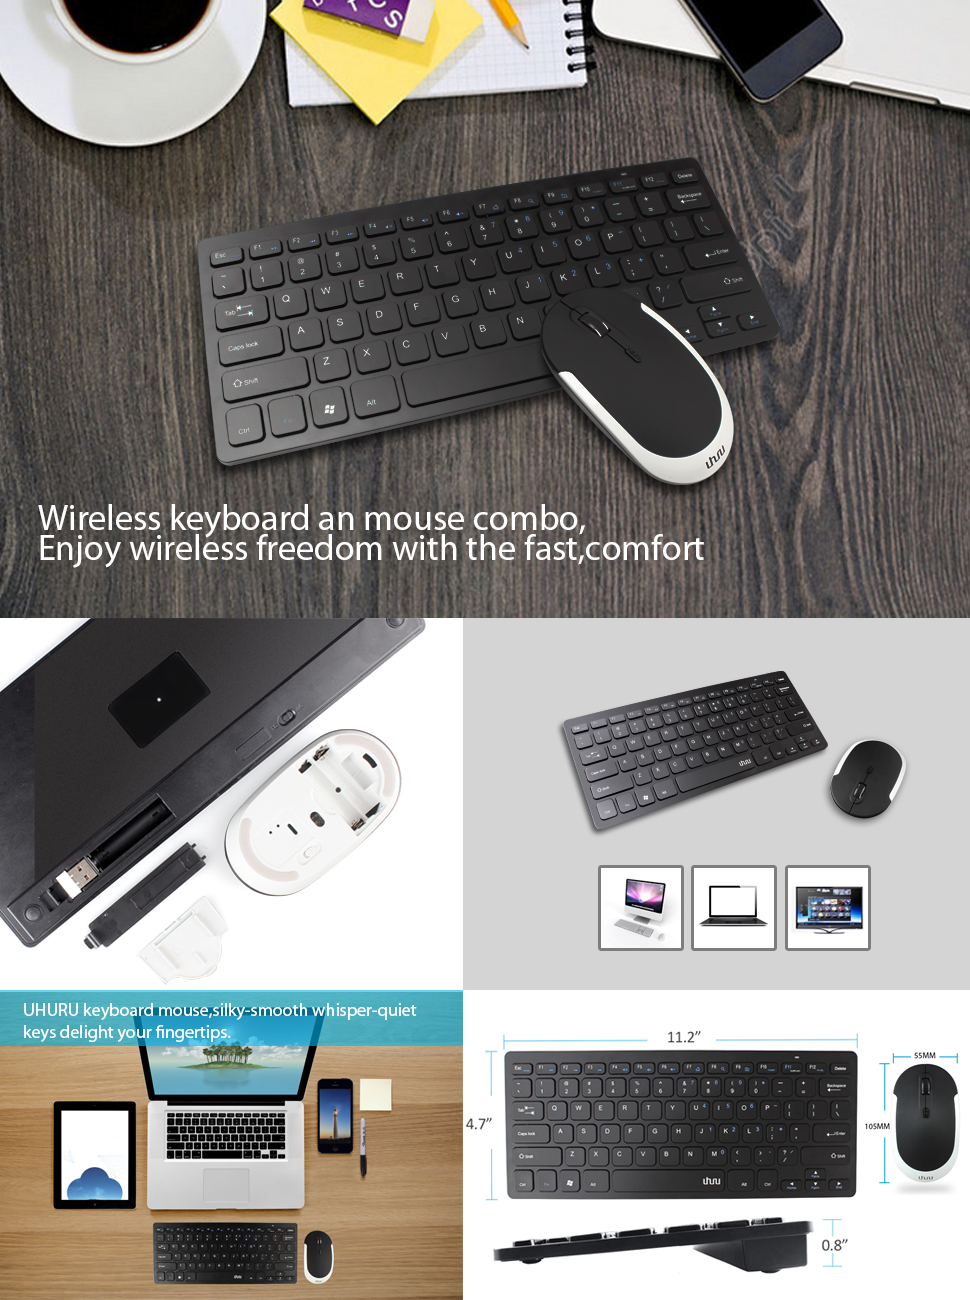 keyboard mouse uhuru 2 4g ultra thin wireless keyboard with silent mouse combo for. Black Bedroom Furniture Sets. Home Design Ideas